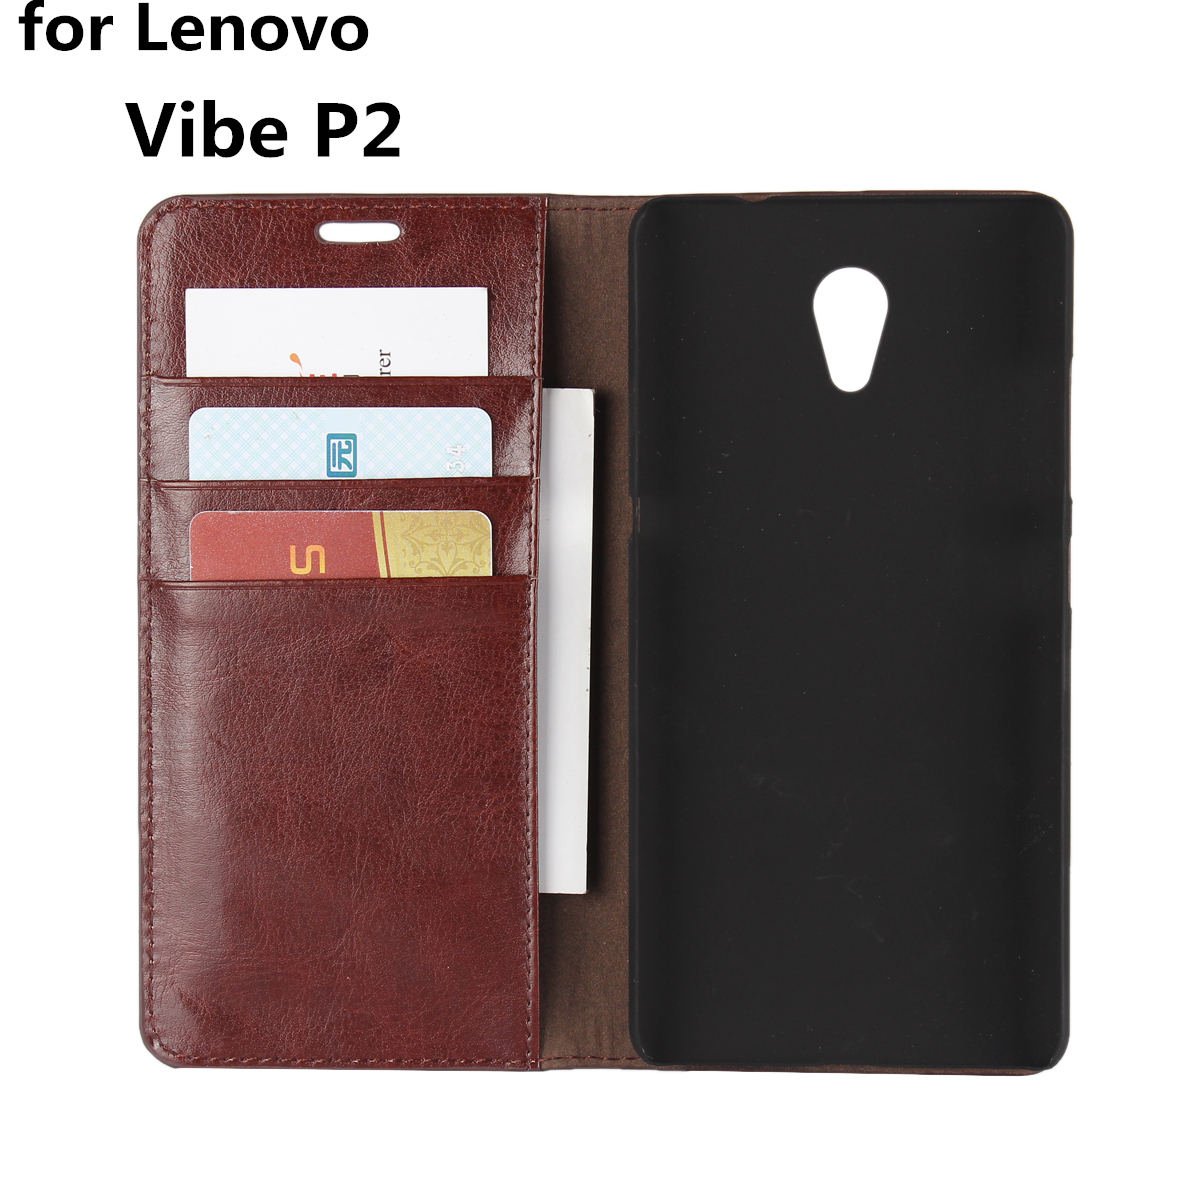 Deluxe Wallet Case For Lenovo Vibe <font><b>P2</b></font> P2C72 premium leather Case Flip Cover Phone Bags